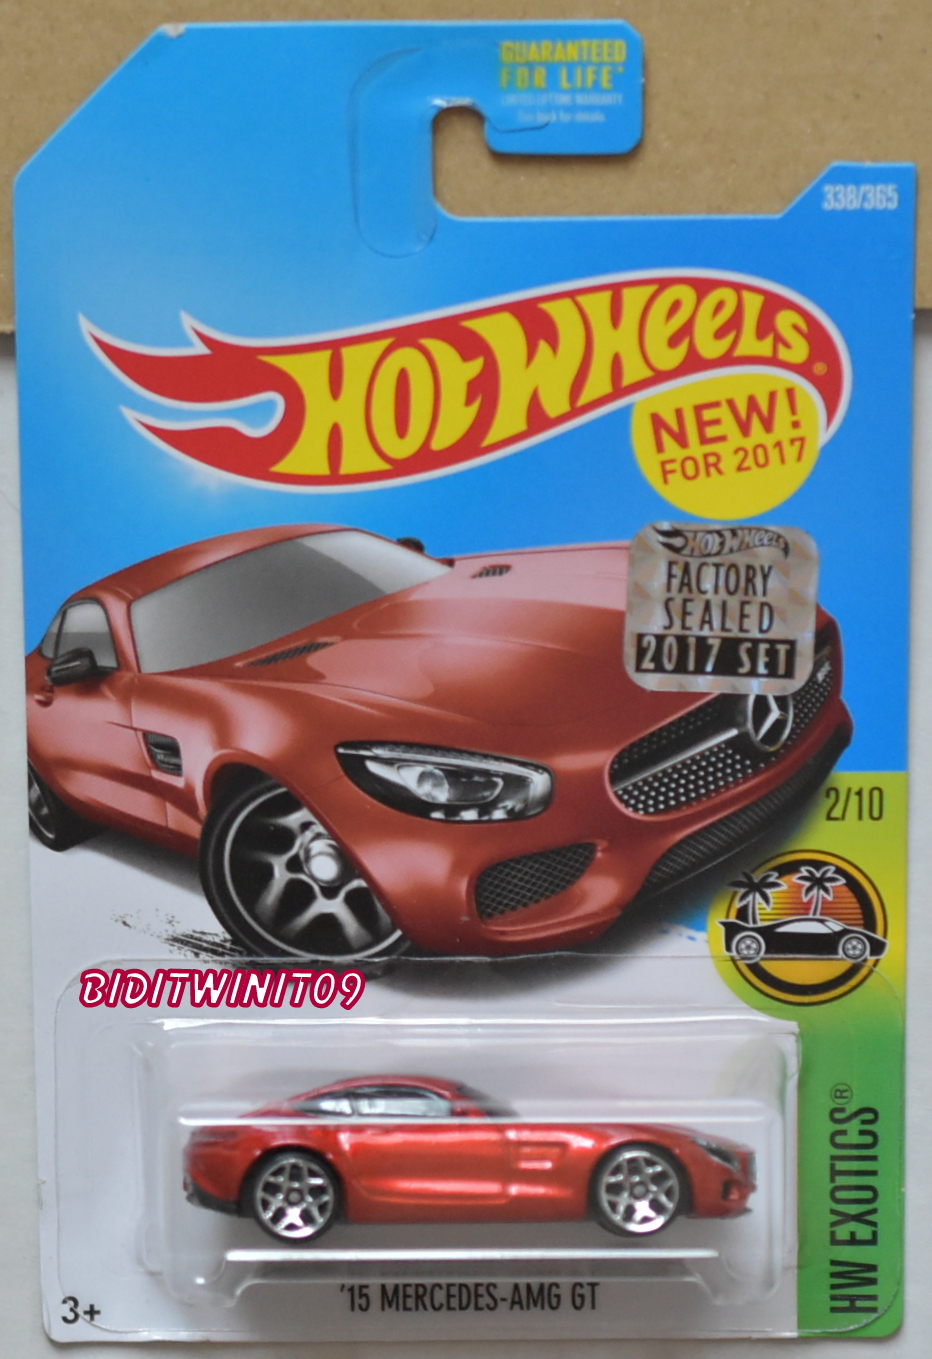 HOT WHEELS 2017 HW EXOTICS '15 MERCEDES-AMG GT RED FACTORY SEALED E+